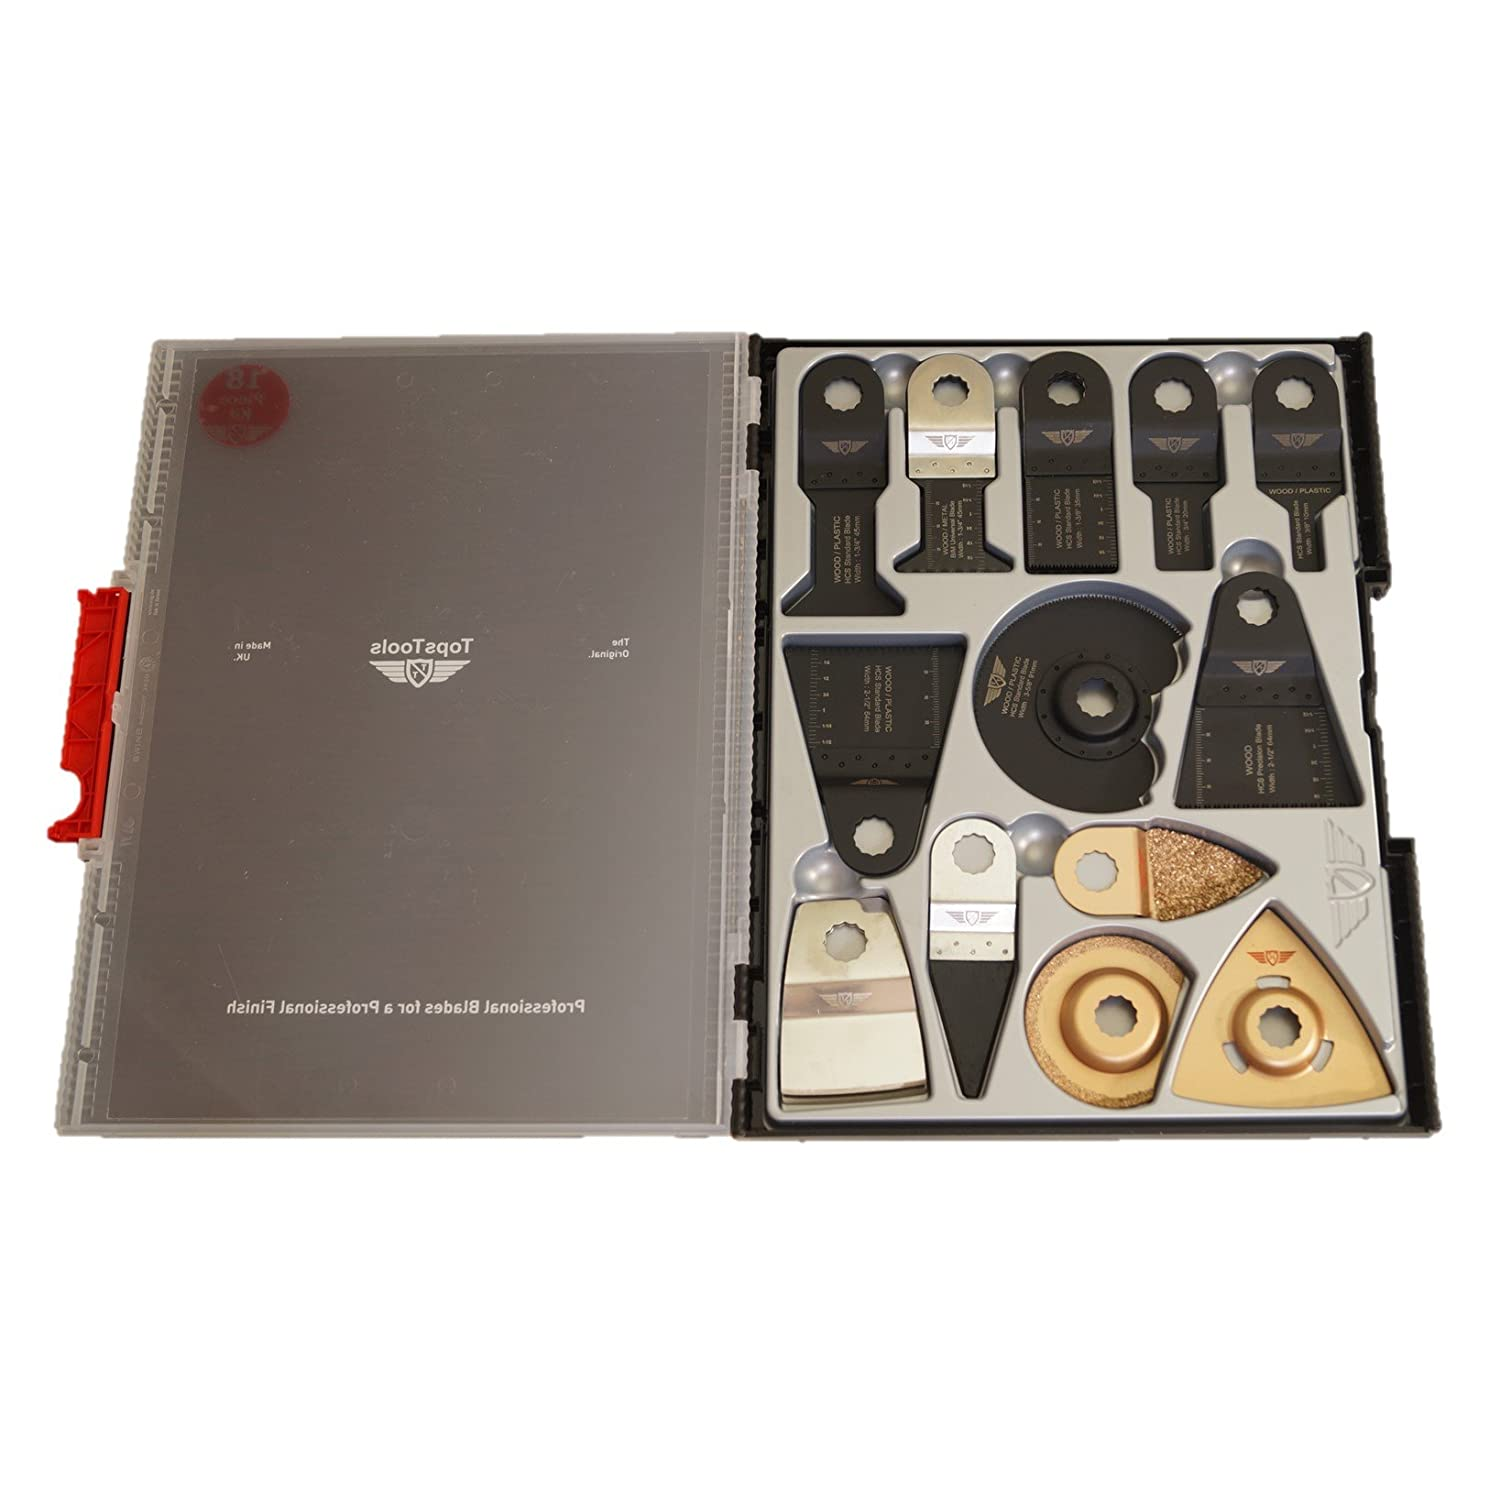 18 x TopsTools SW_WXK18 Mix Blades Box Set for Worx Sonicrafter, Worx 250W, Erbauer Multitool Multi Tool Accessories